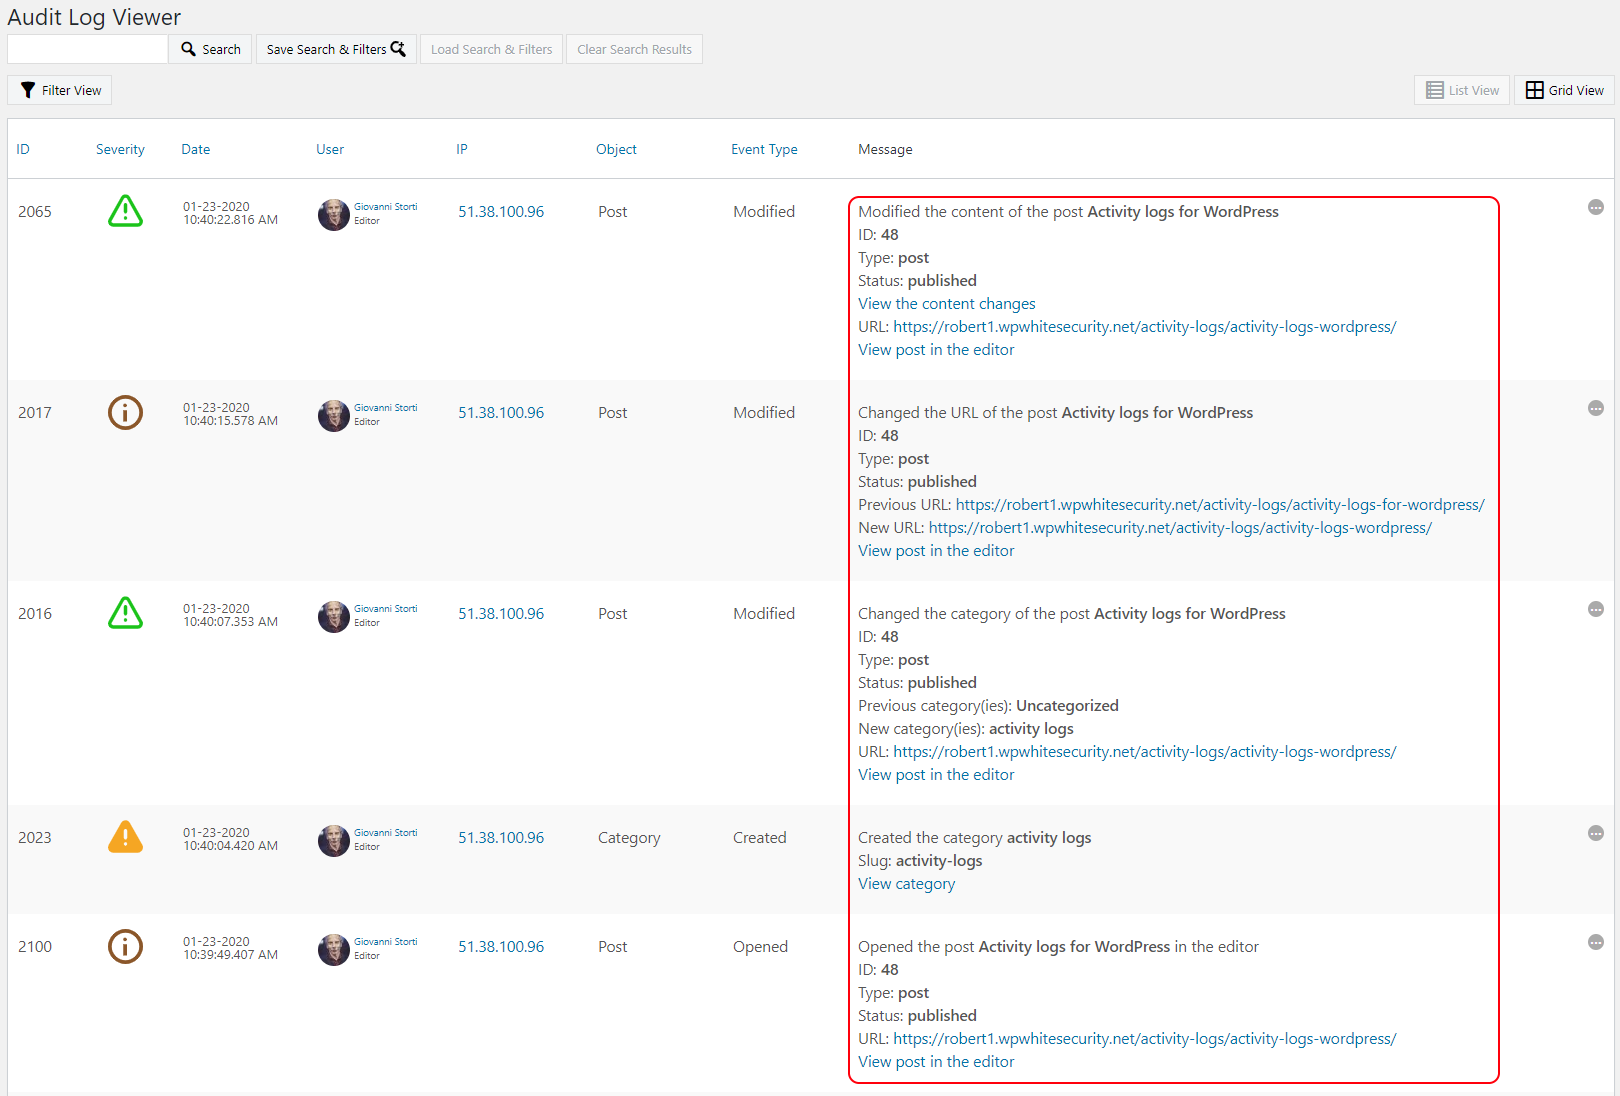 Post changes reported in the WordPress activity logs